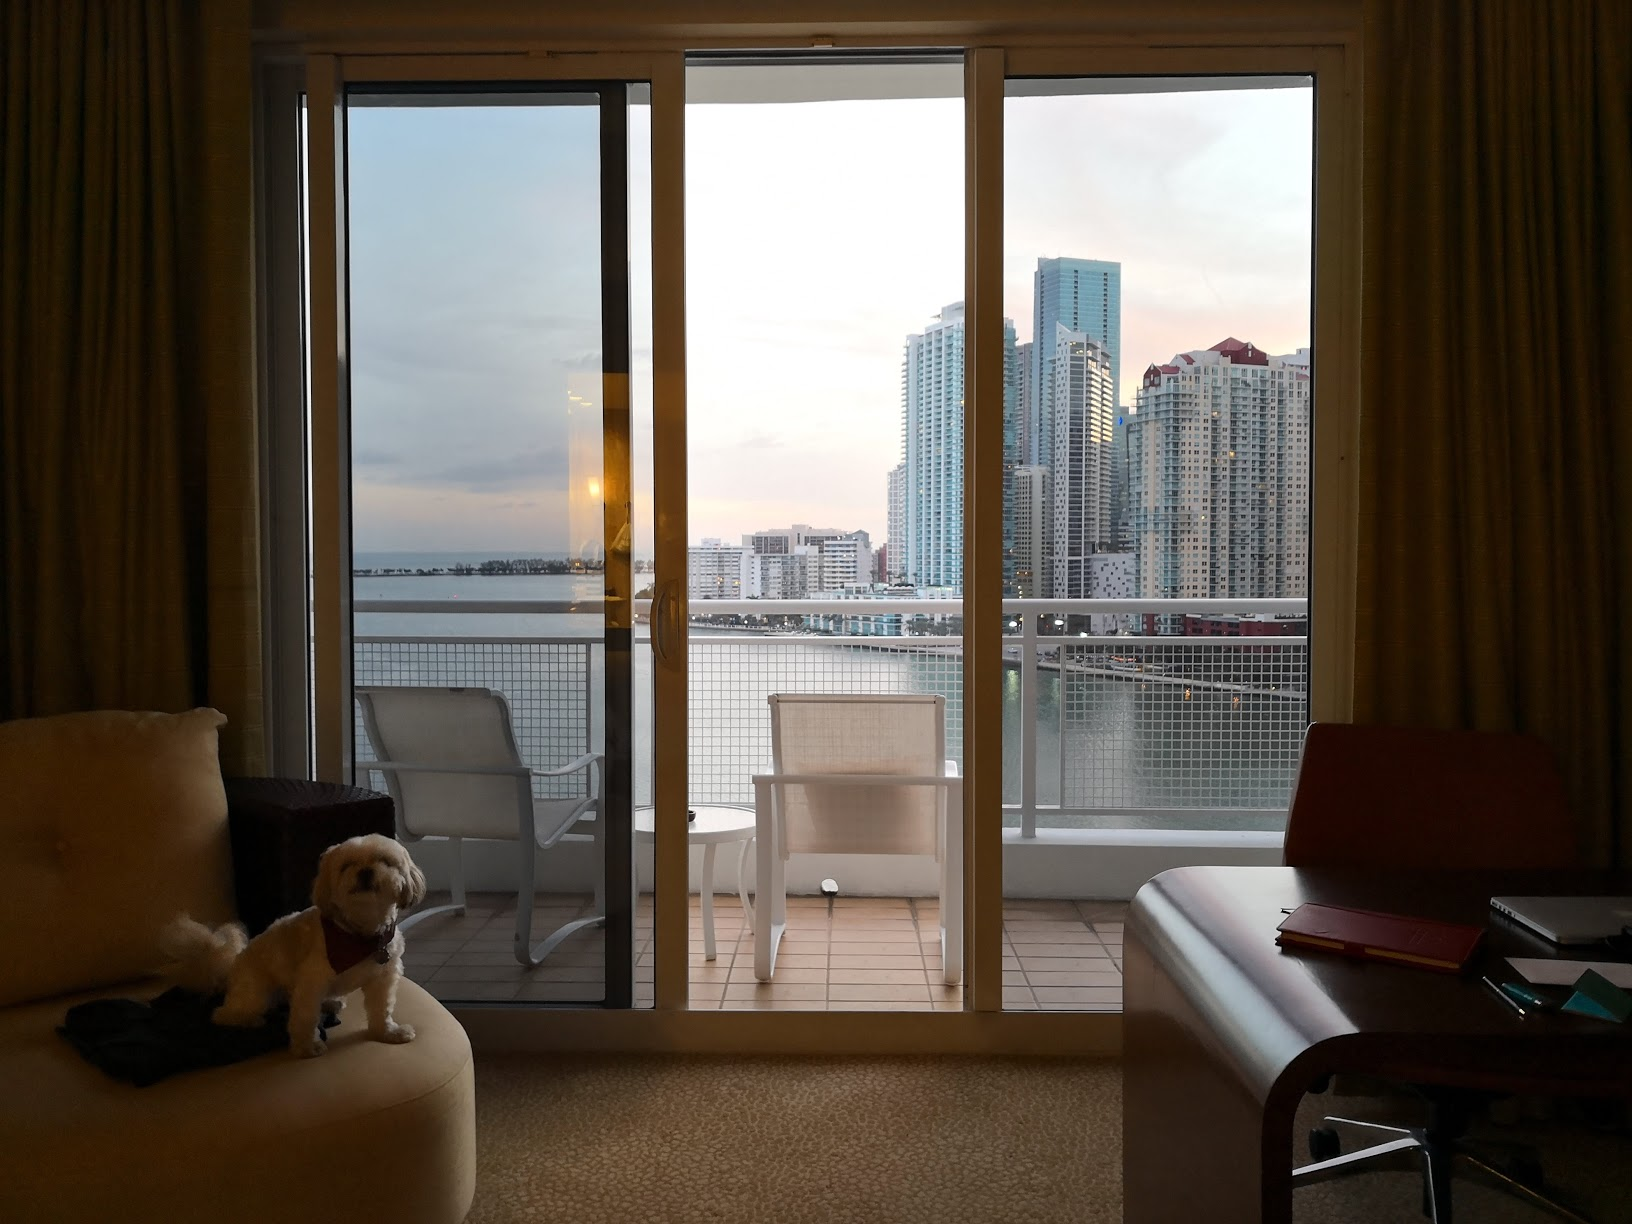 Check out the view from my room at Mandarin Oriental Miami.